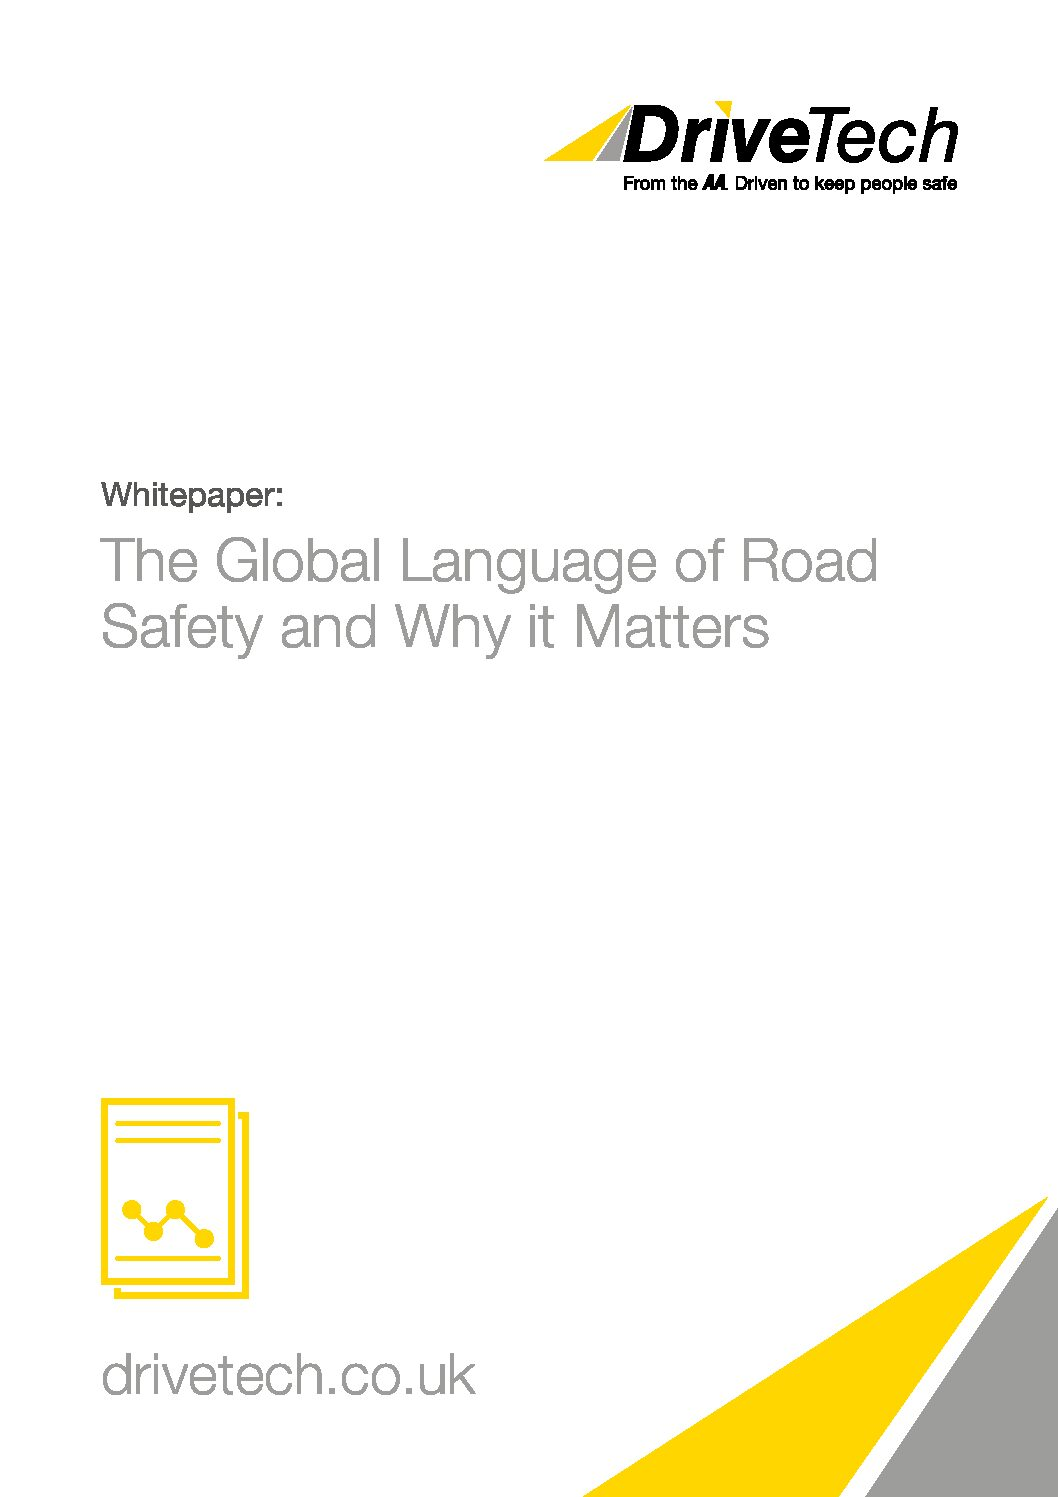 Whitepaper – The Global Language of Road Safety and Why it Matters